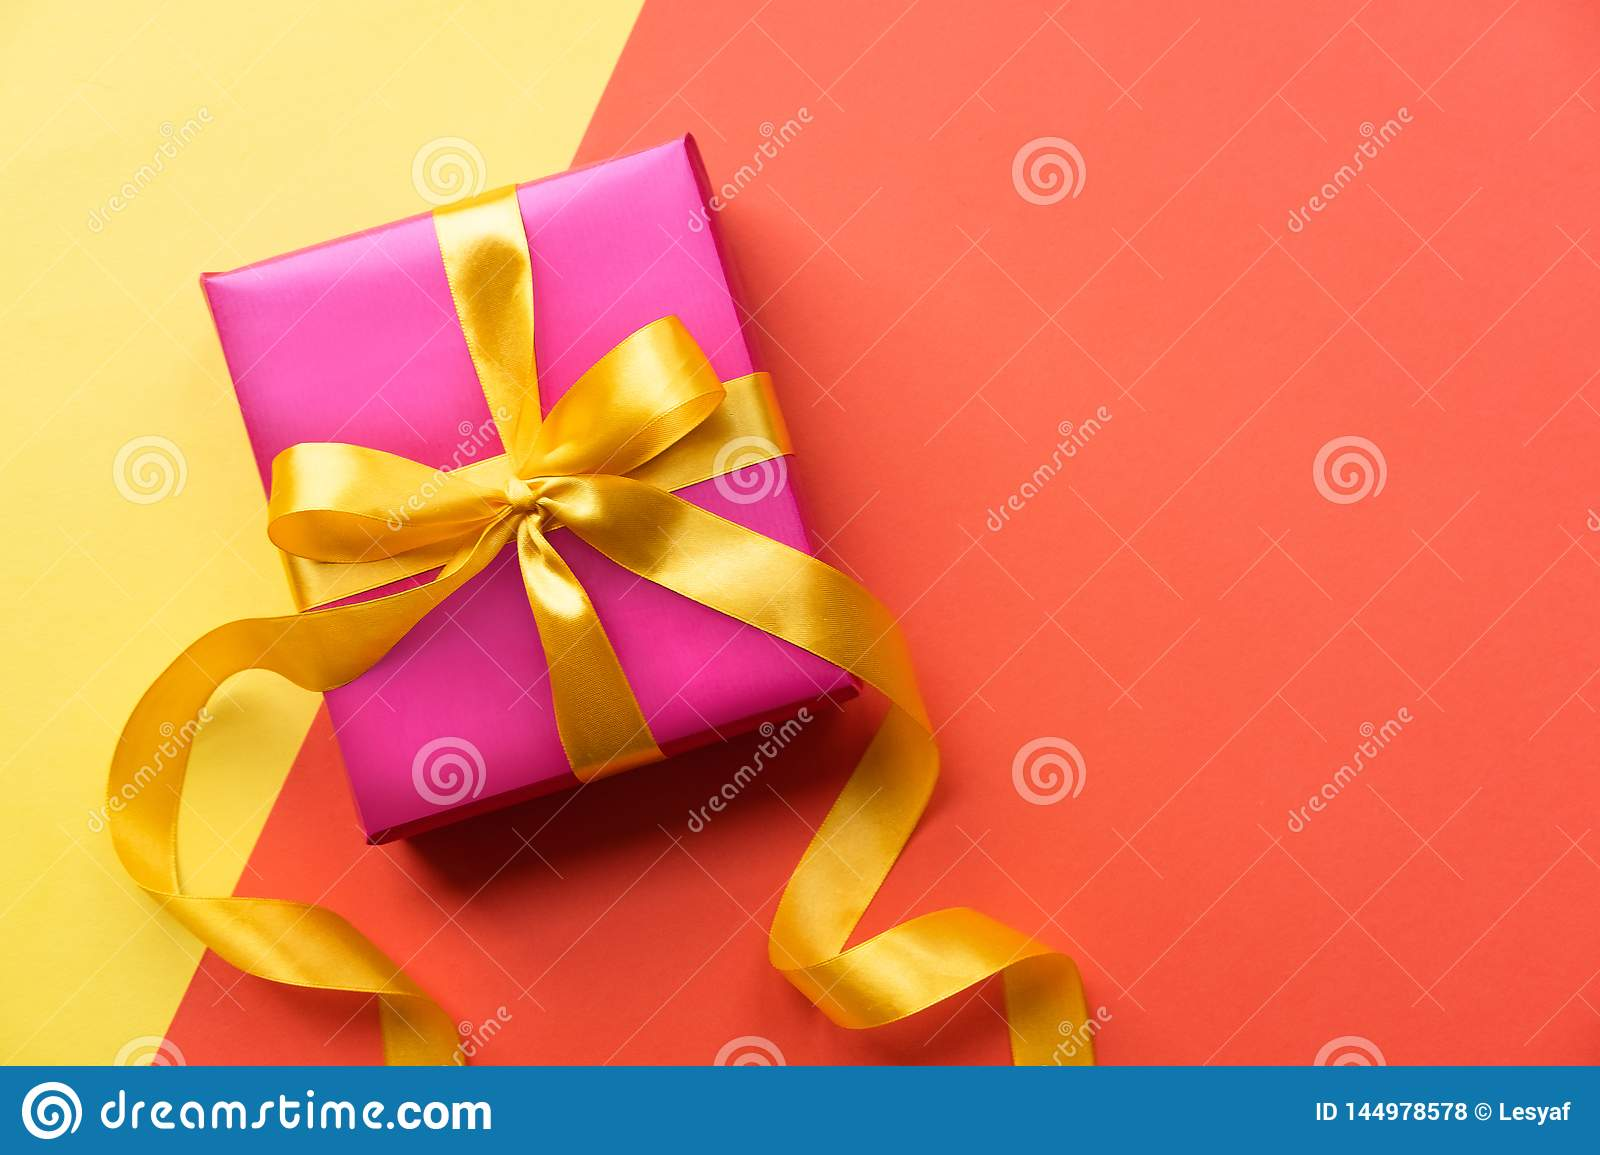 Pink gift box on color background. Yellow and orange background with present. Copy space.